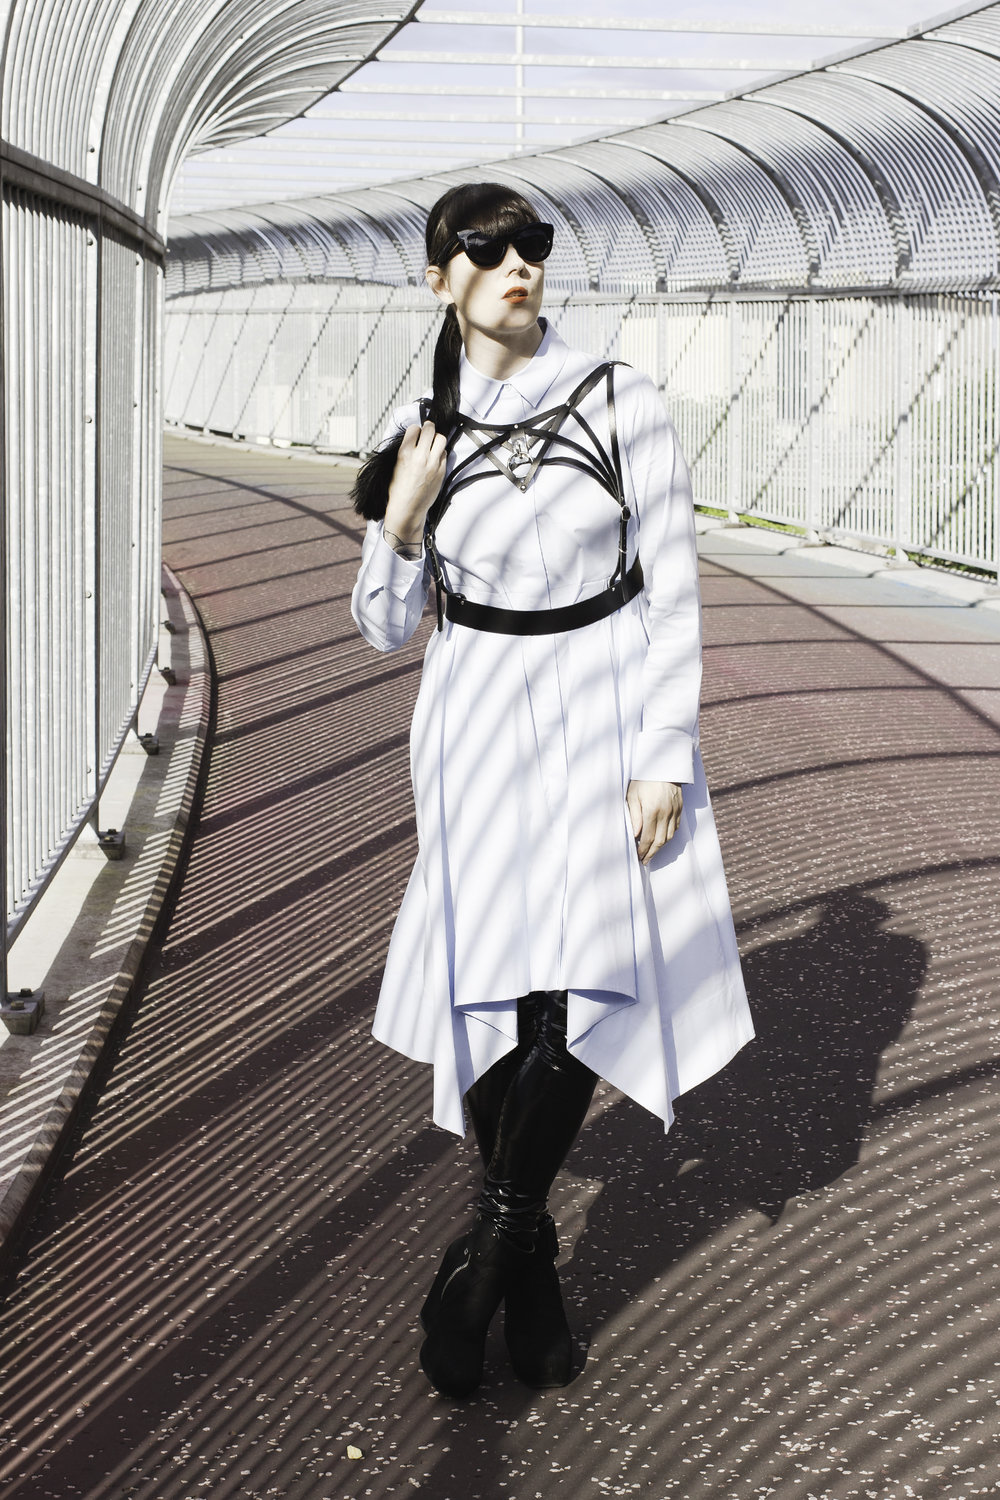 The Details - COS shirt dress / rhea LEATHERCRAFTS harness / les chiffoniers leggings / rick owens boots / cheap monday sunglasses